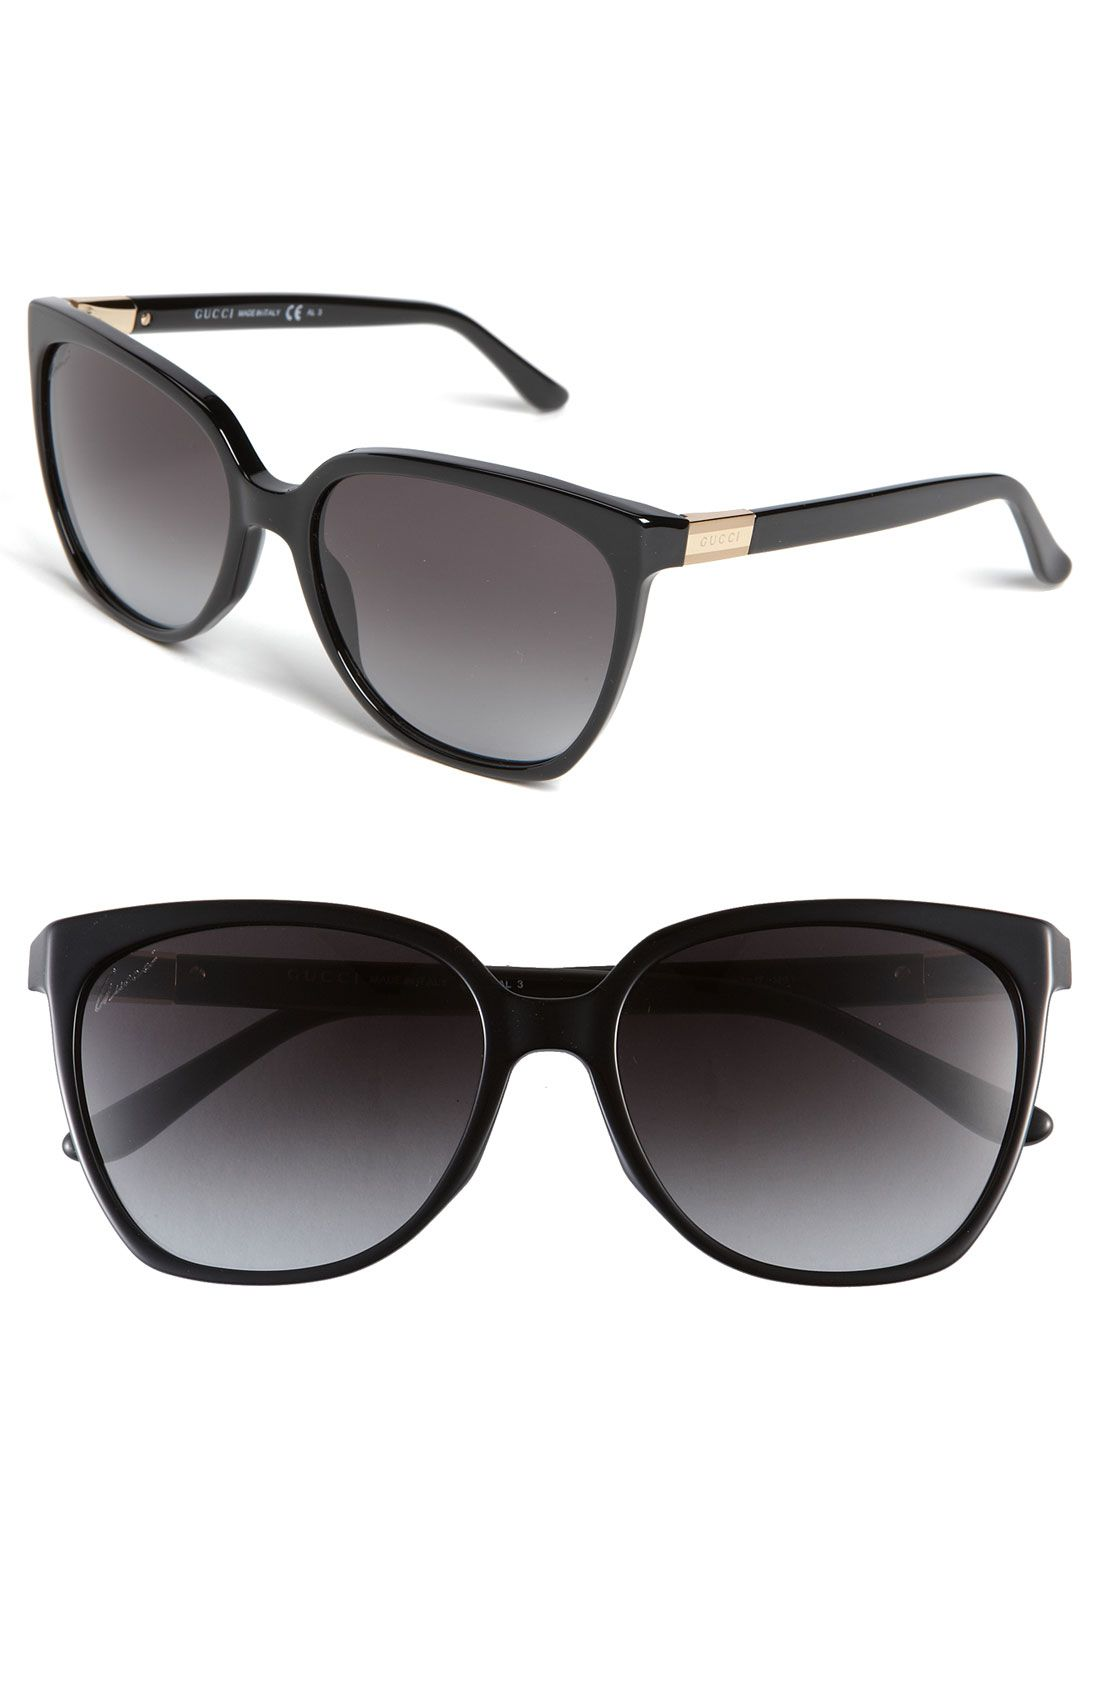 gucci sunglasses that look like ray bans  1000+ ideas about gucci sunglasses on pinterest